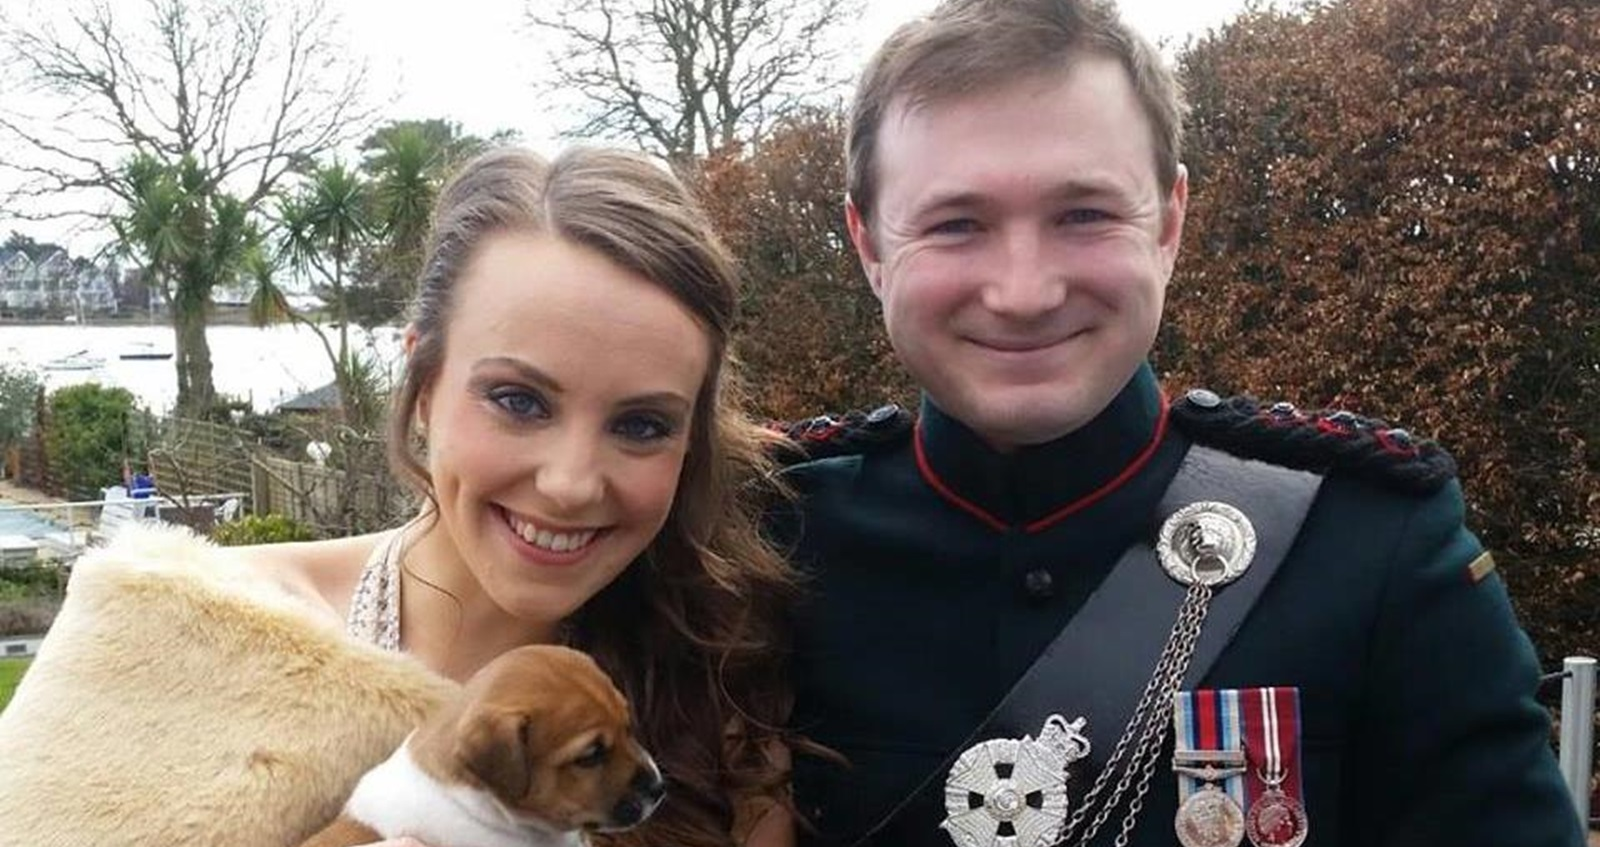 Victoria holding a puppy and standing with her husband.